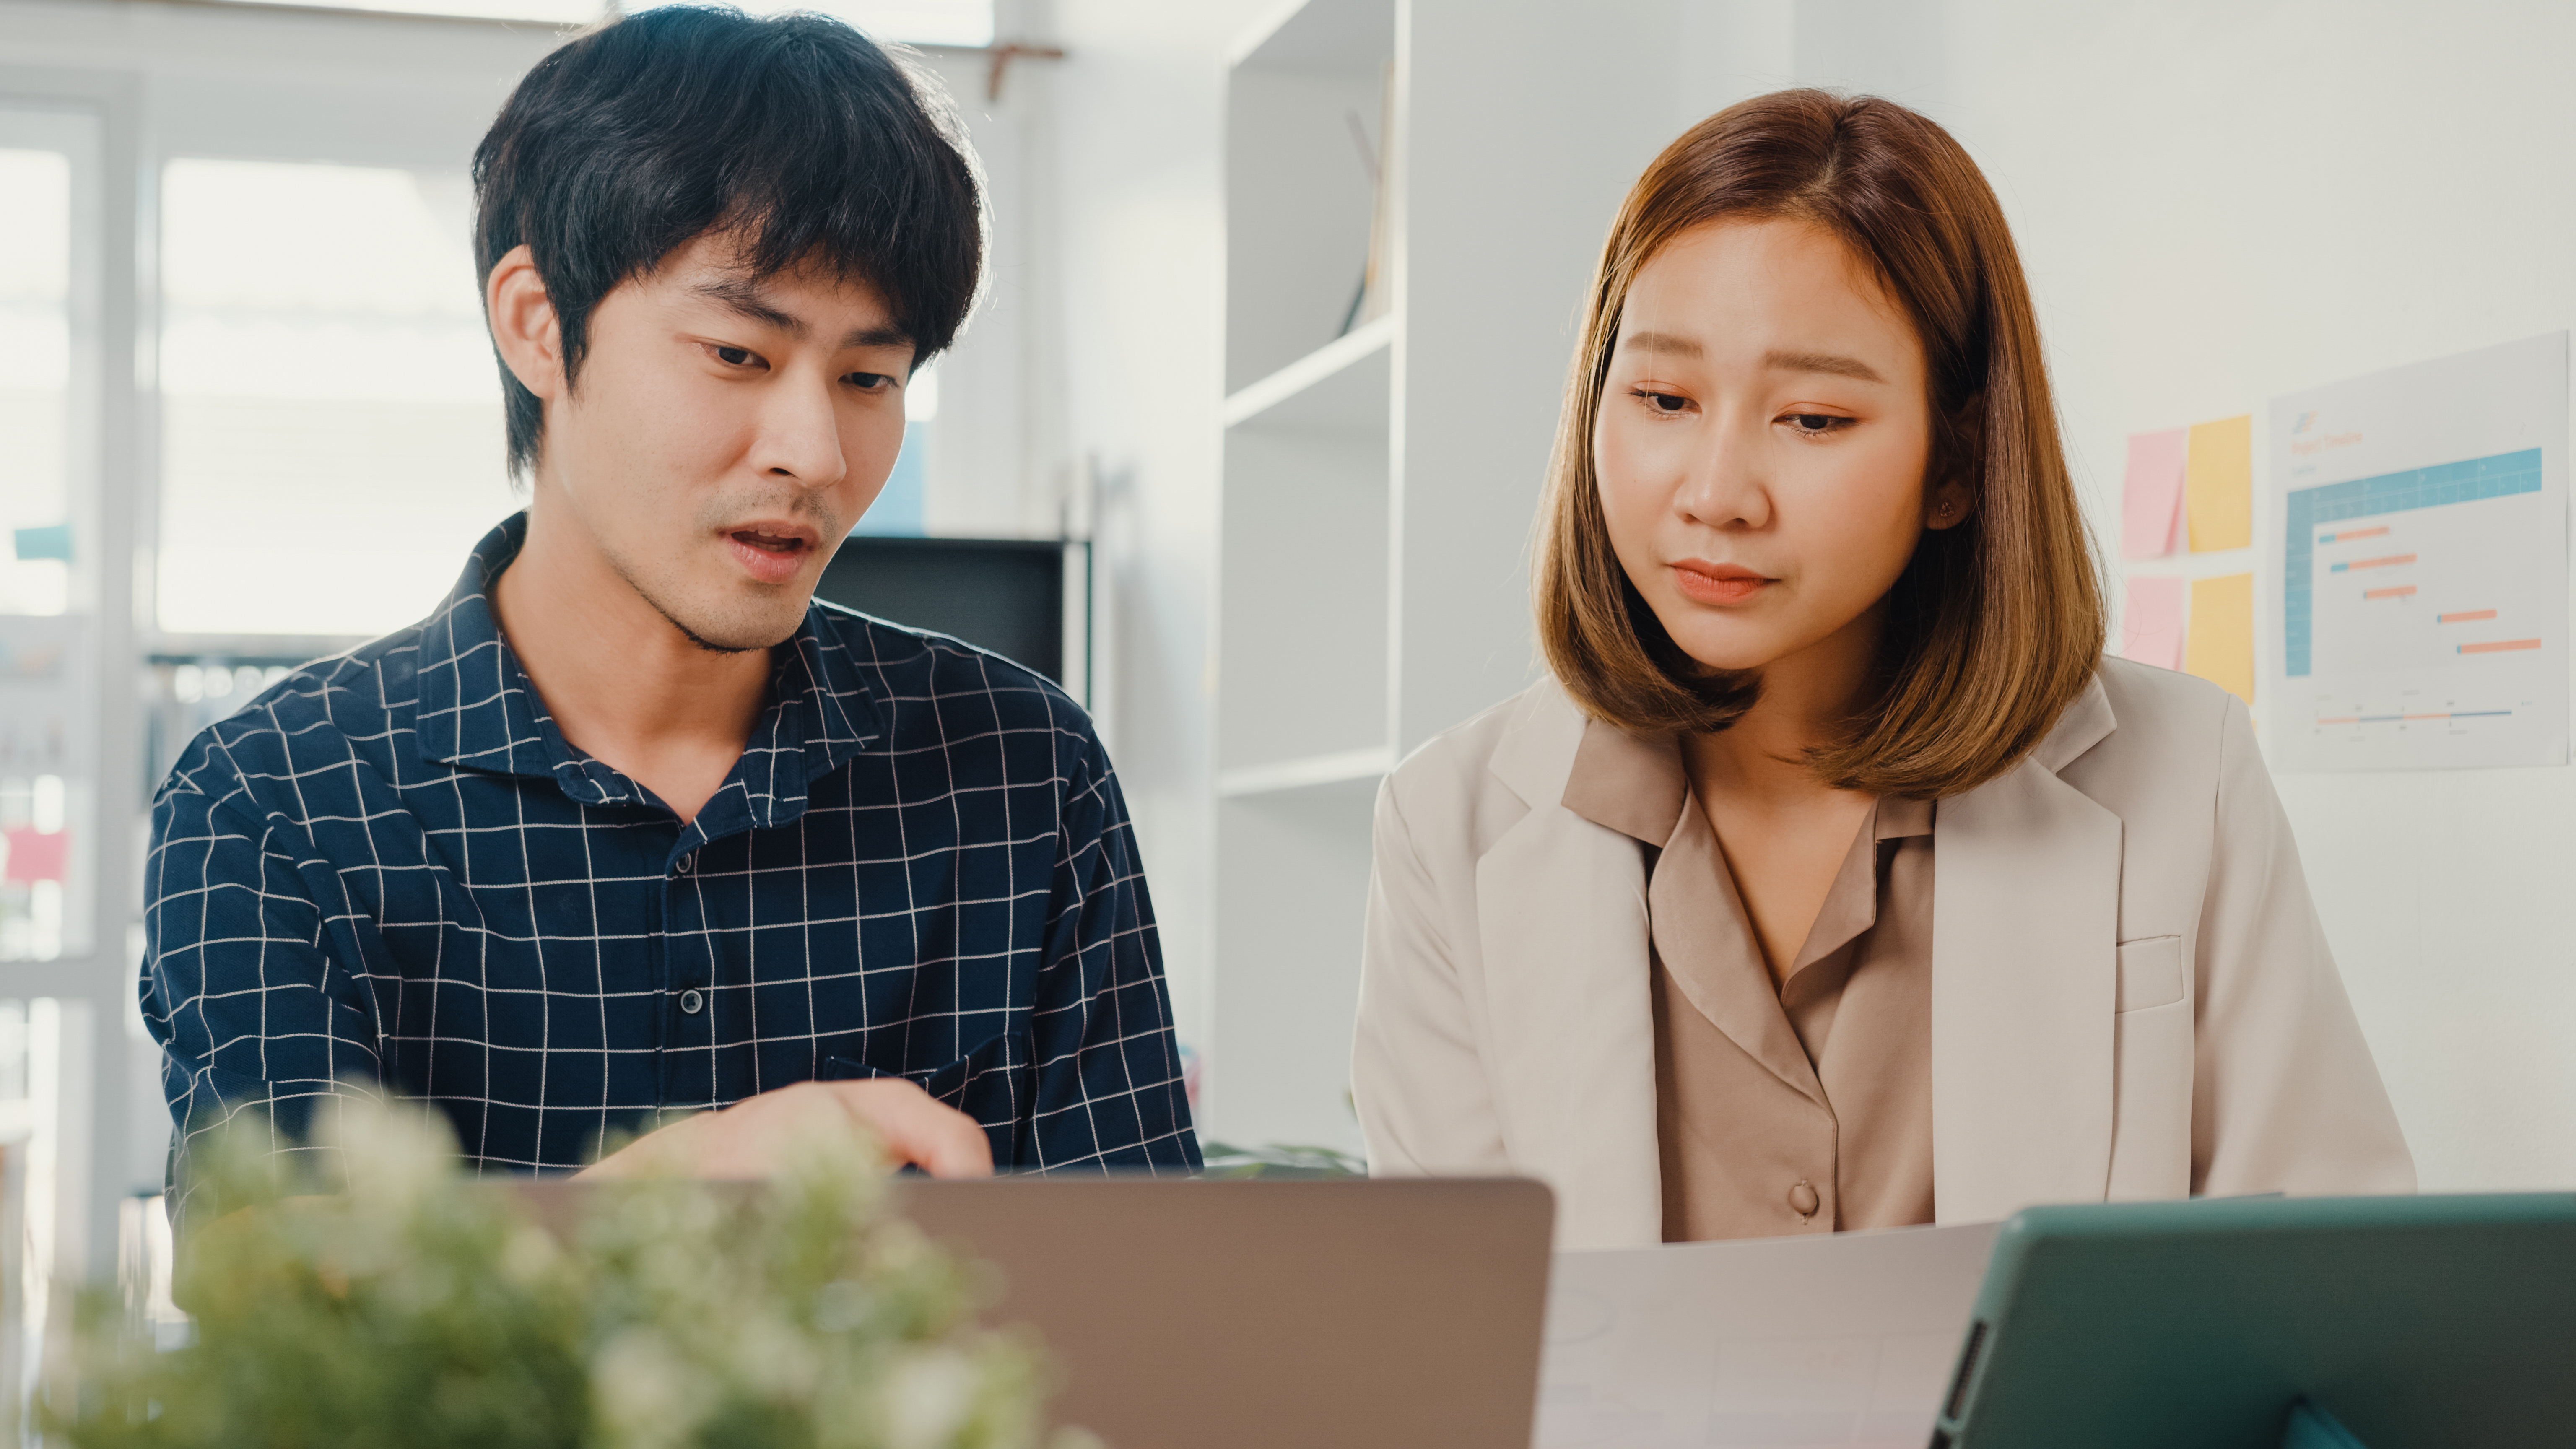 young-asian-creative-businessman-businesswoman-manager-discuss-project-compare-point-paperwork-laptop.jpg